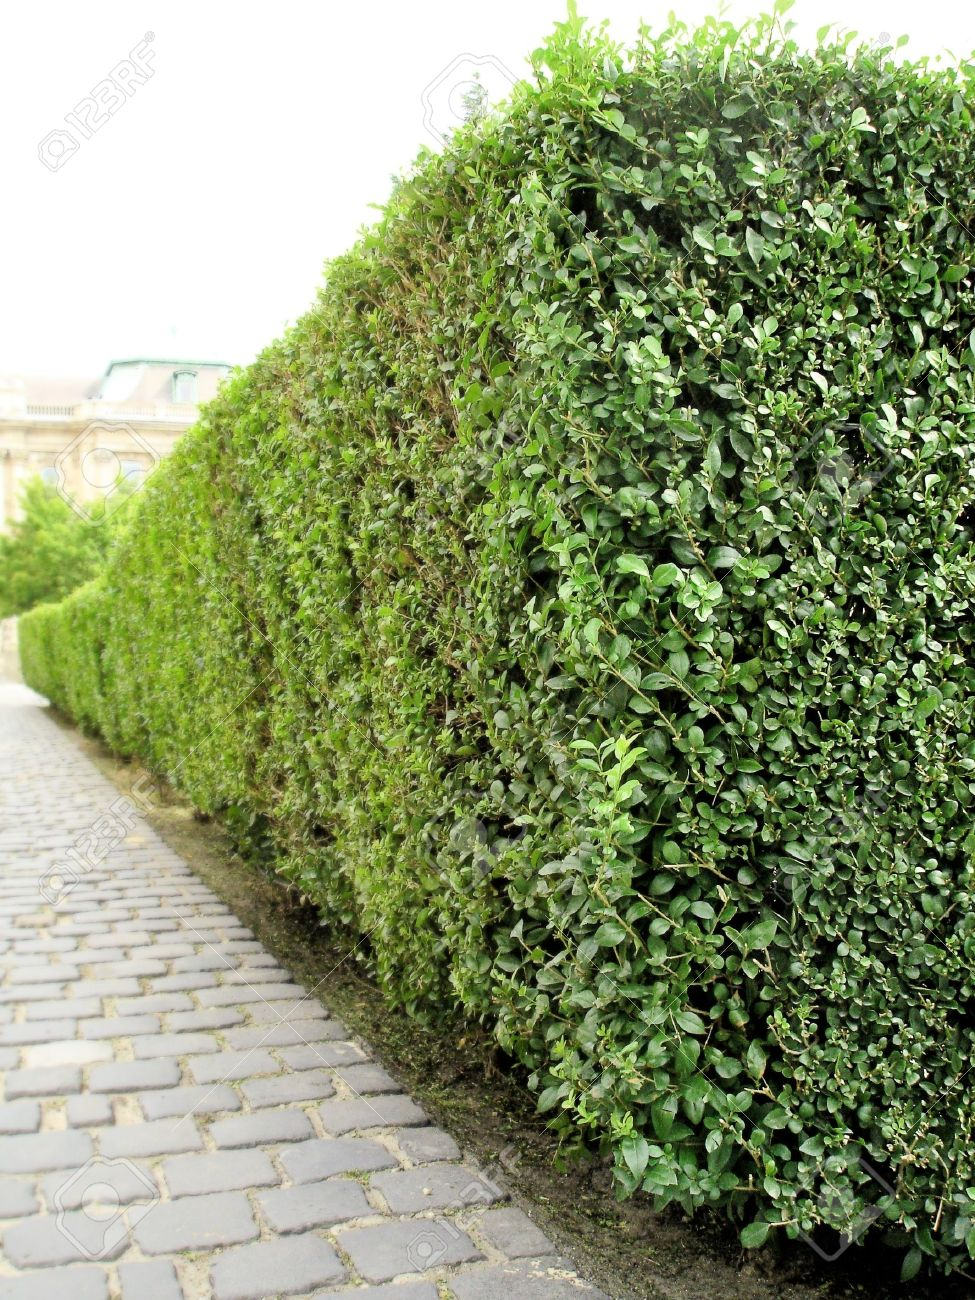 Green Bush Garden Perspective Stock Photo Picture And Royalty Free Image Image 21608813